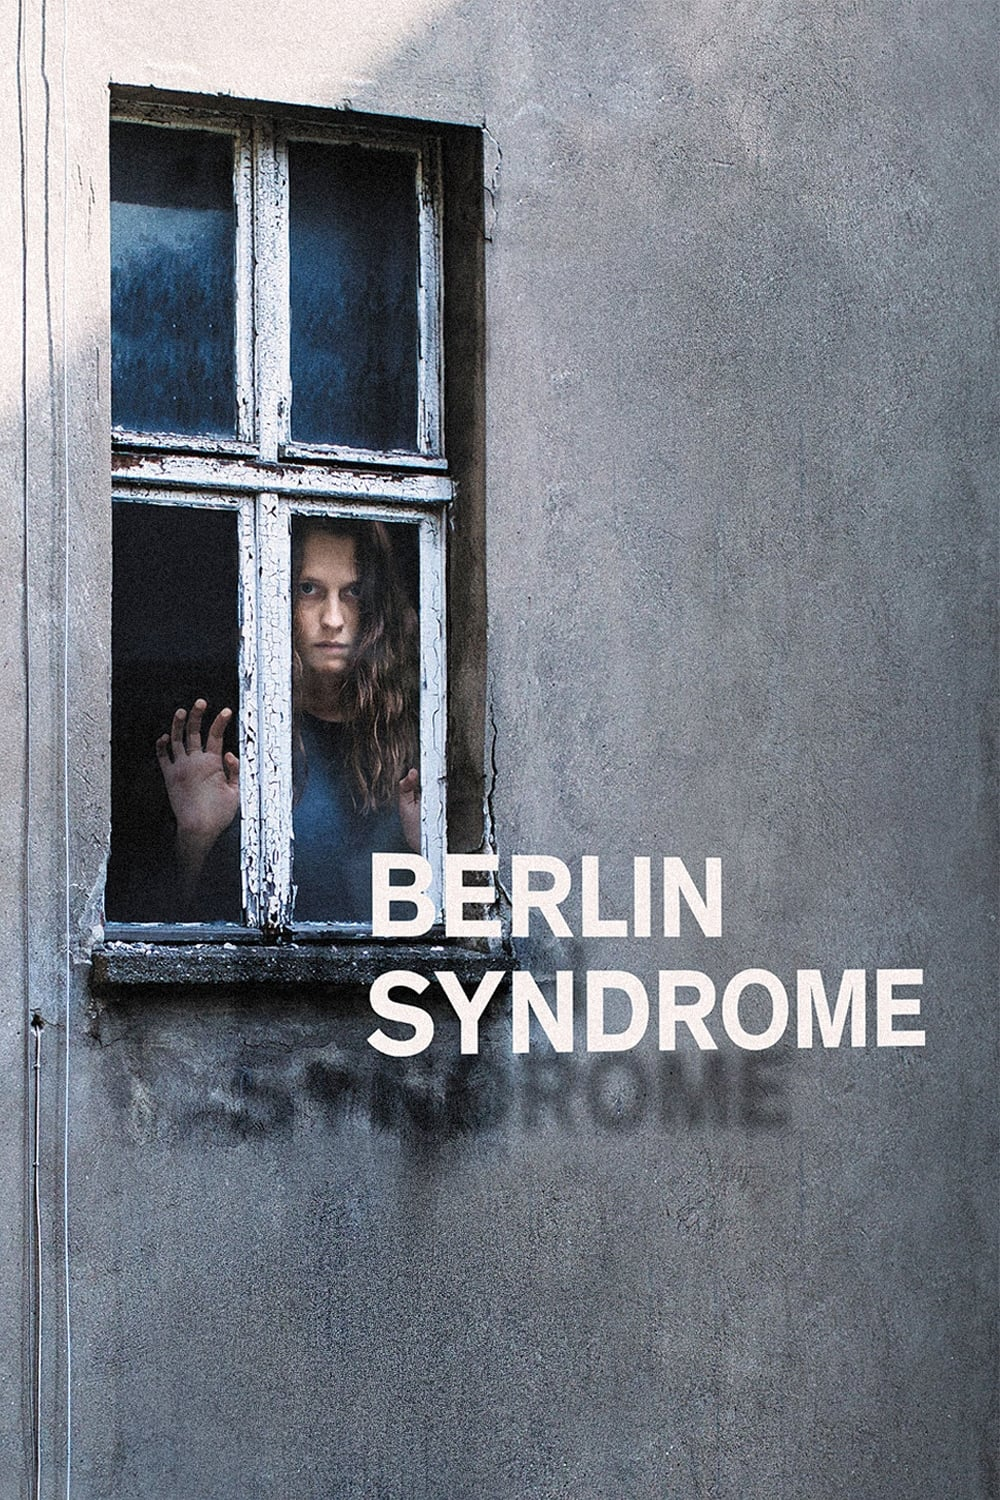 BERLIN SYNDROME putlocker 4k